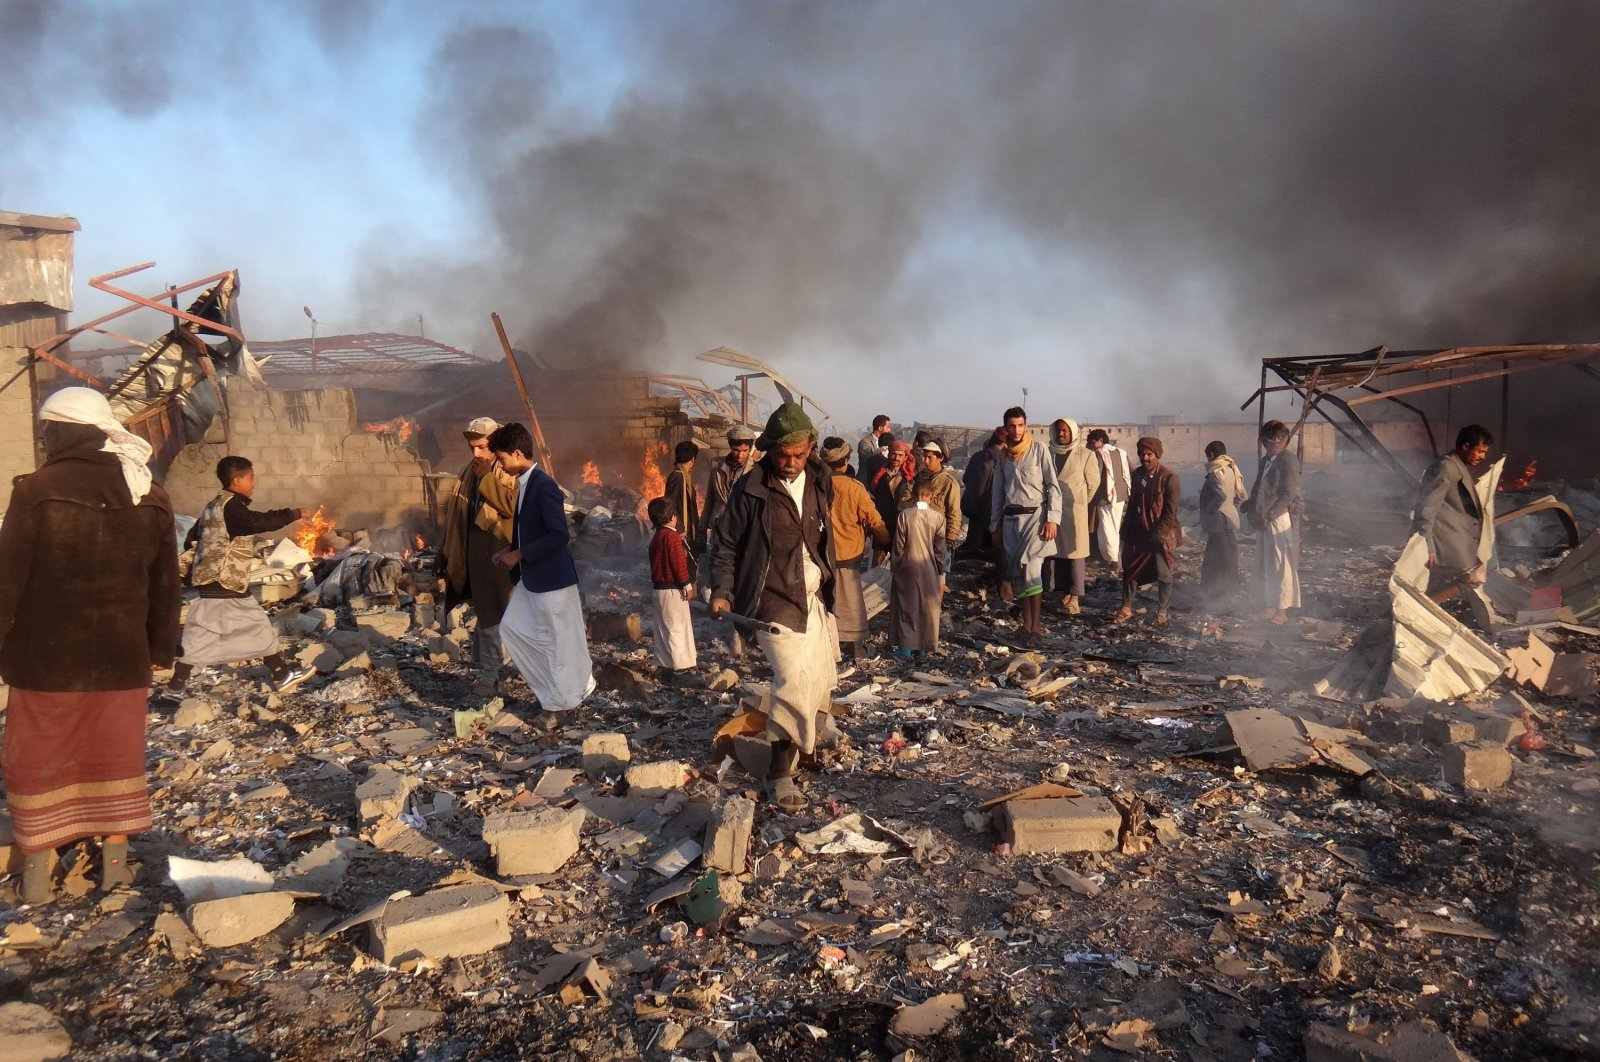 Smoke rises as Yemenis inspect the damage at the site of airstrikes in the northwestern Houthi-held city of Saada, Jan. 06, 2018.